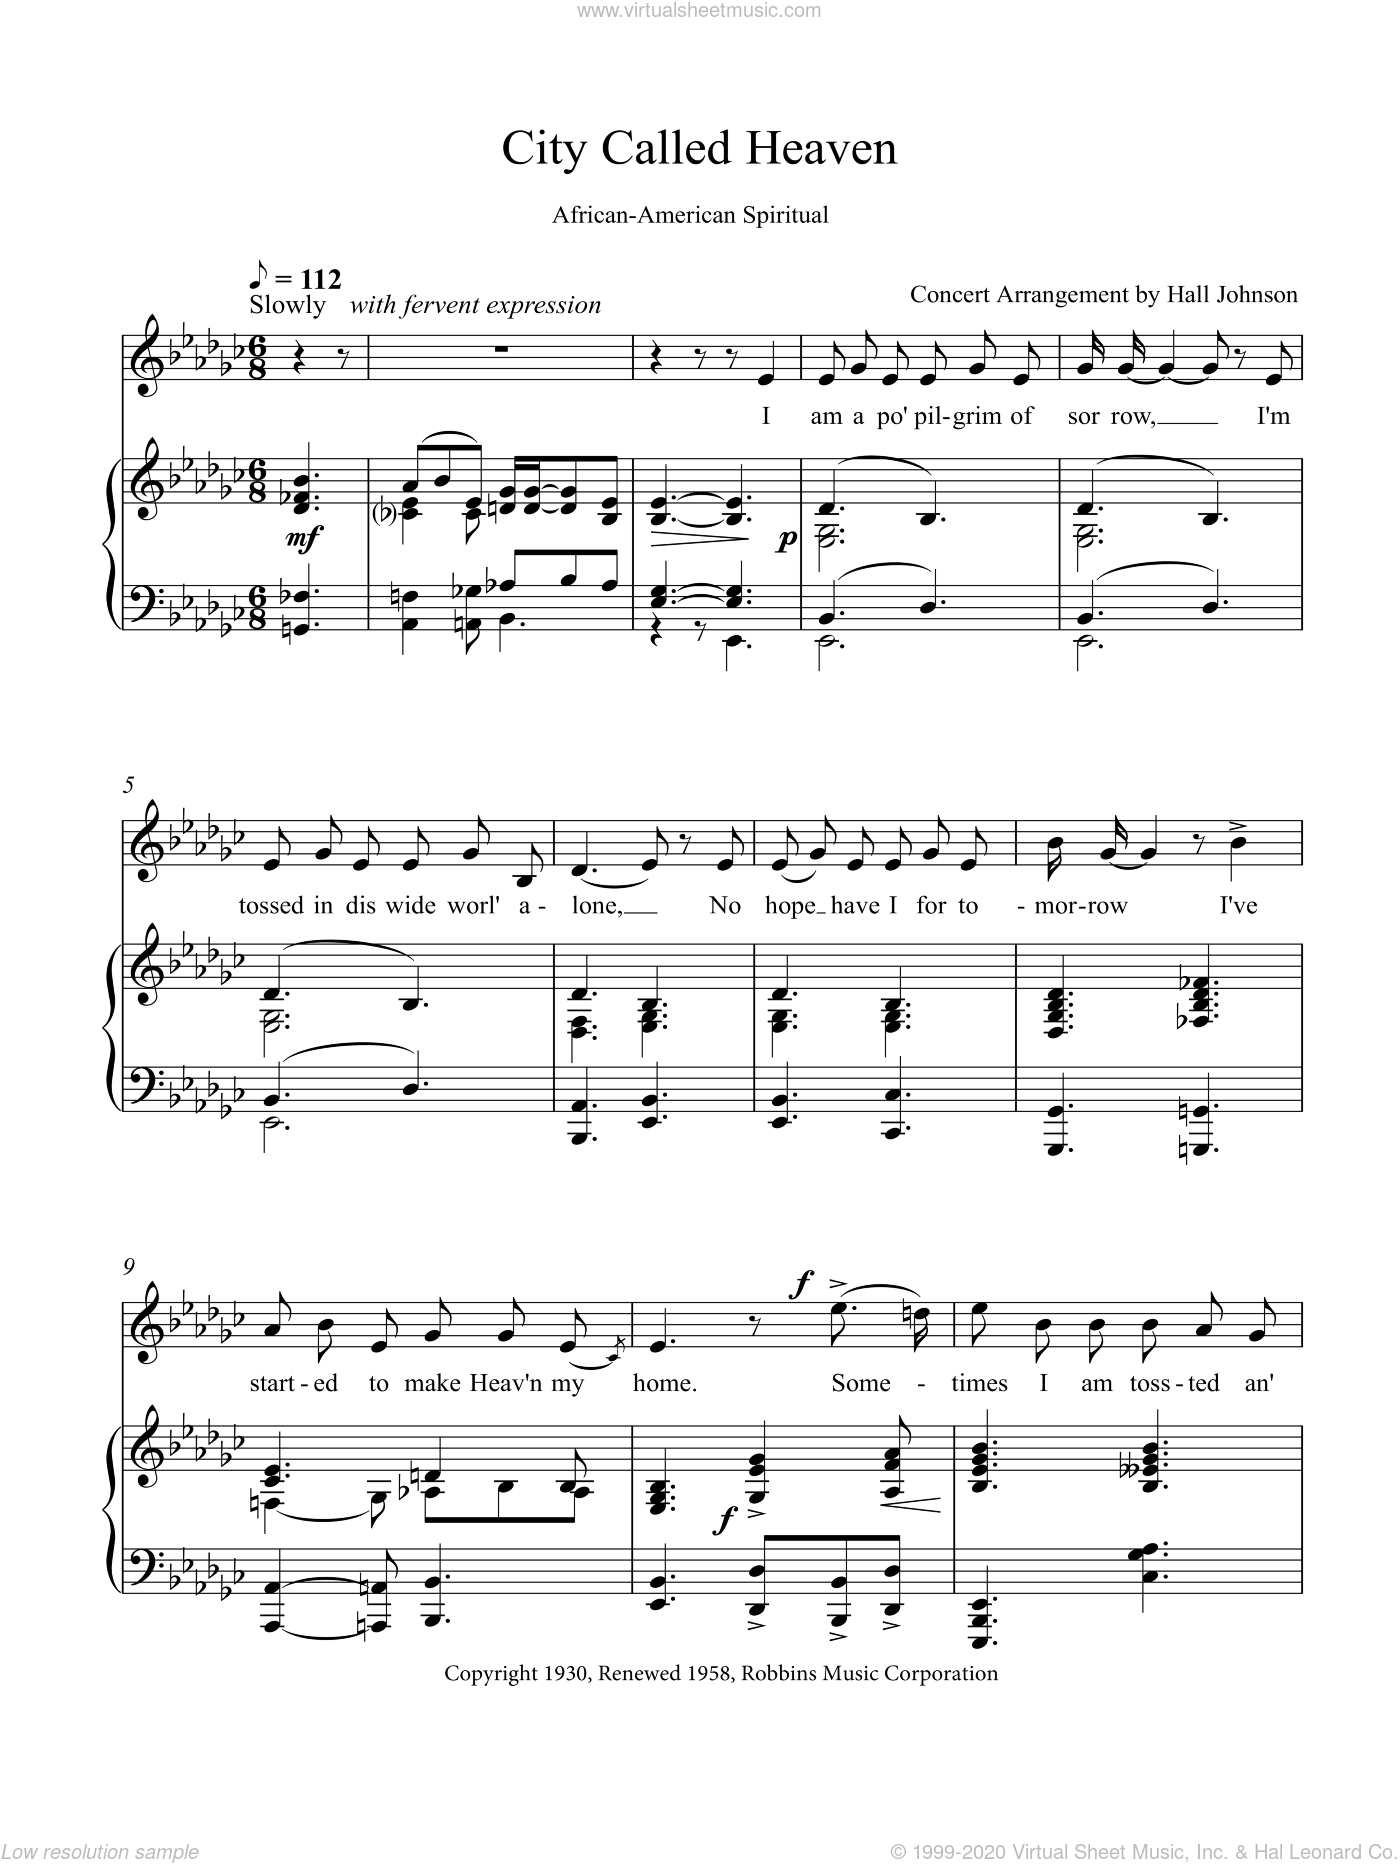 City Called Heaven (E-flat minor) sheet music for voice and piano by Hall Johnson, classical score, intermediate